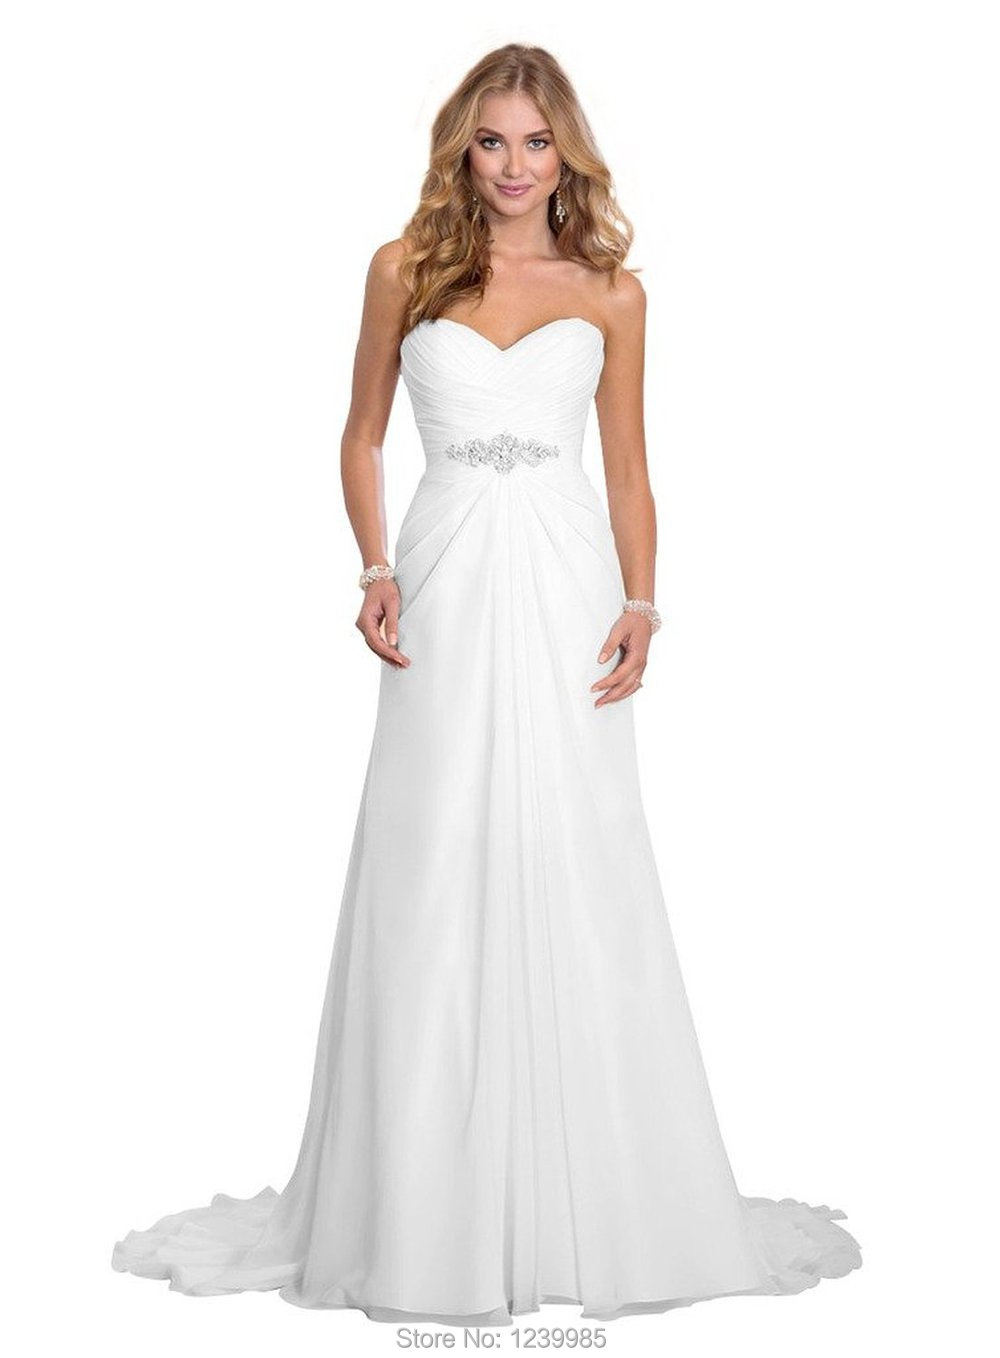 White dress design 2017 - Aliexpress Com Buy E Marry Wedding Dress 2017 Simple Design Off Shoulder Sexy Backless Chiffon Bridal Gown With Beads White Dress For Bride From Reliable